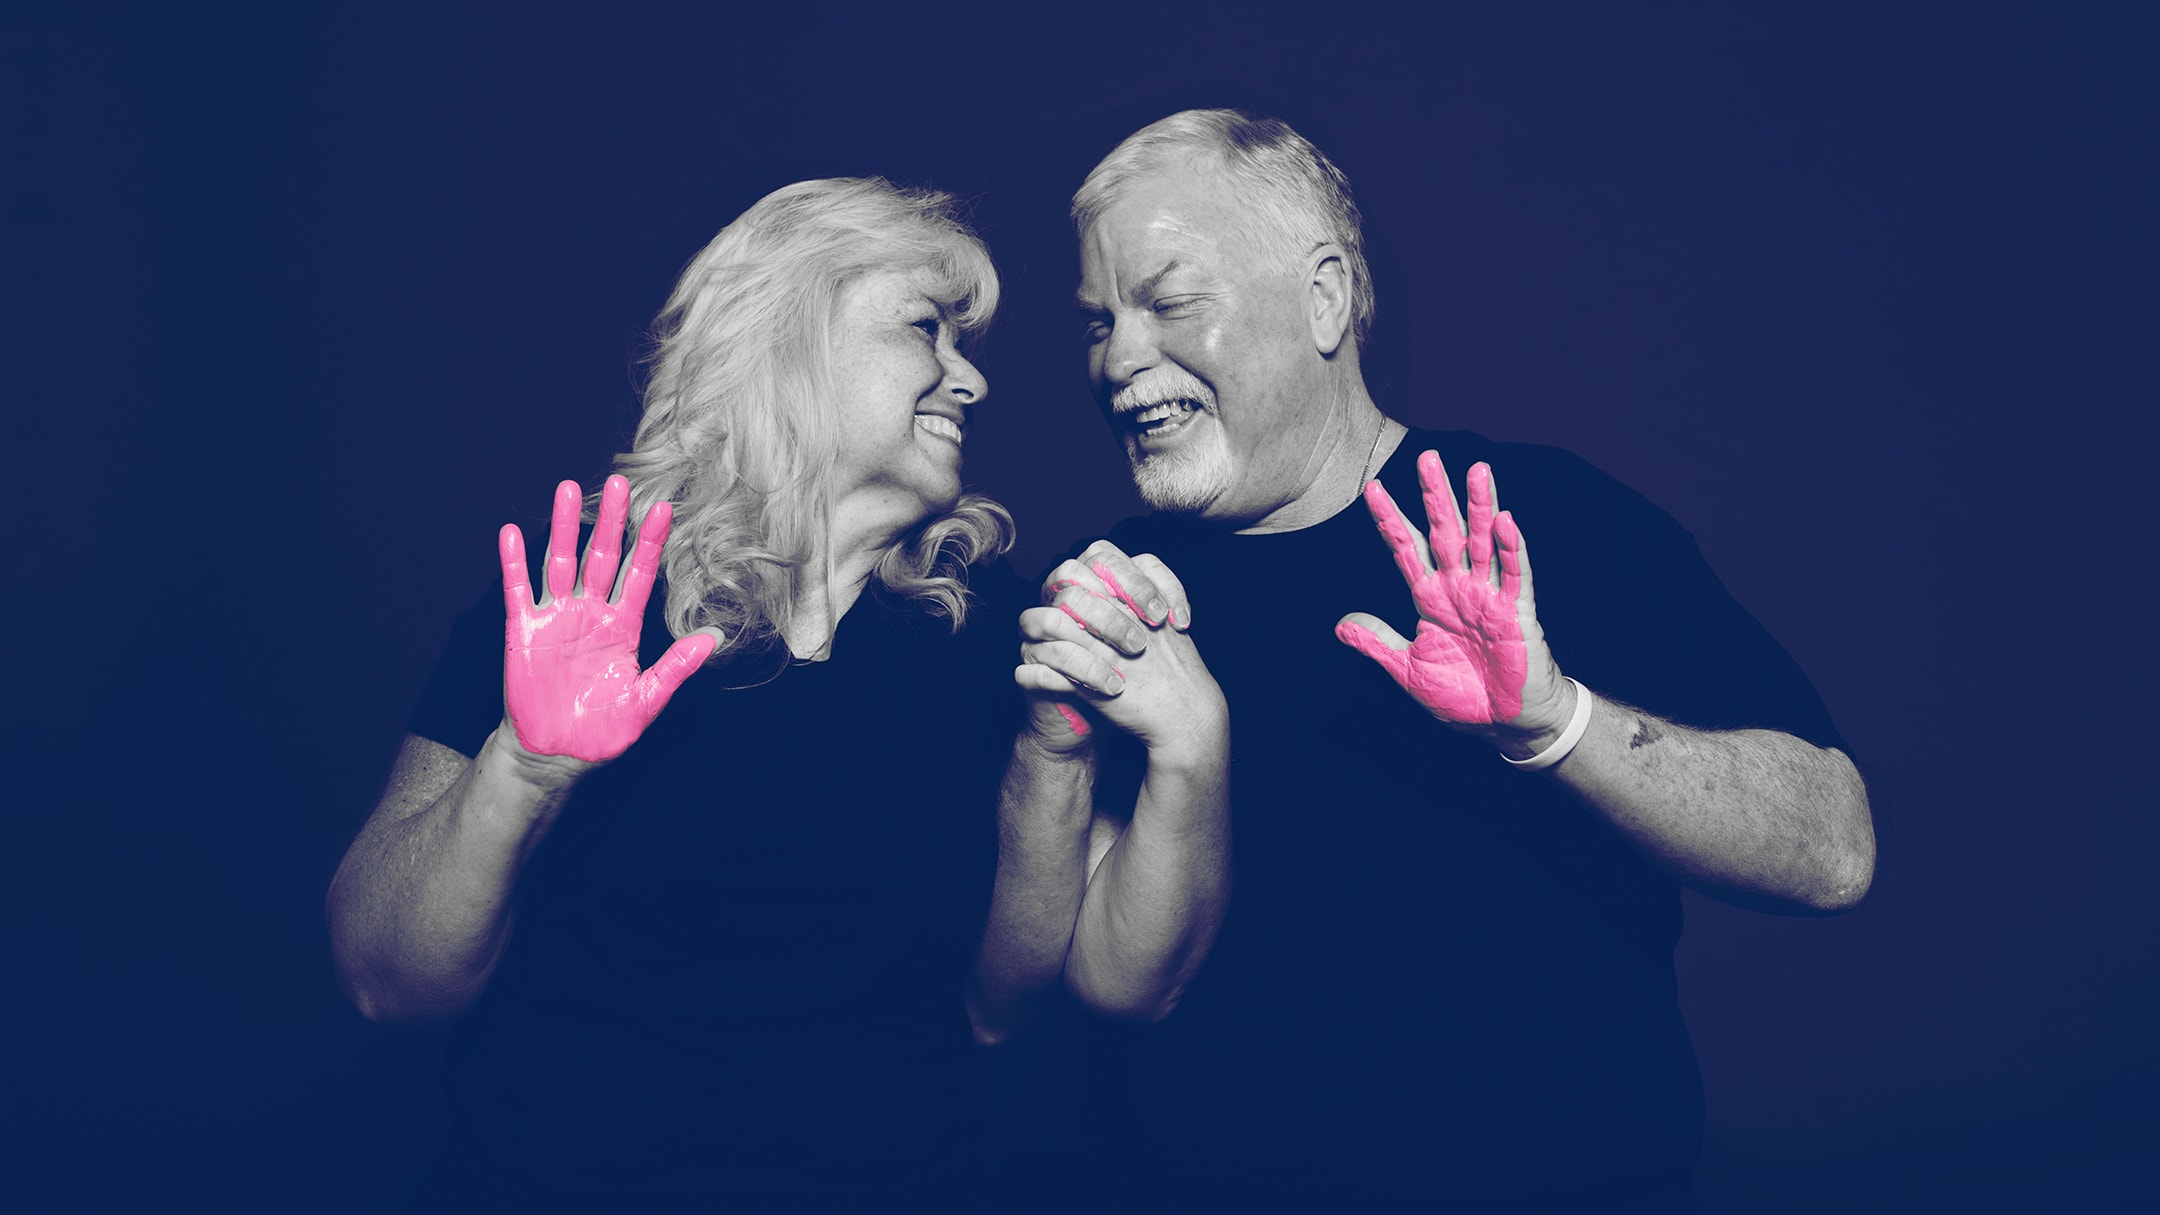 A woman and a man looking at each other and smiling with pink paint on their hands.